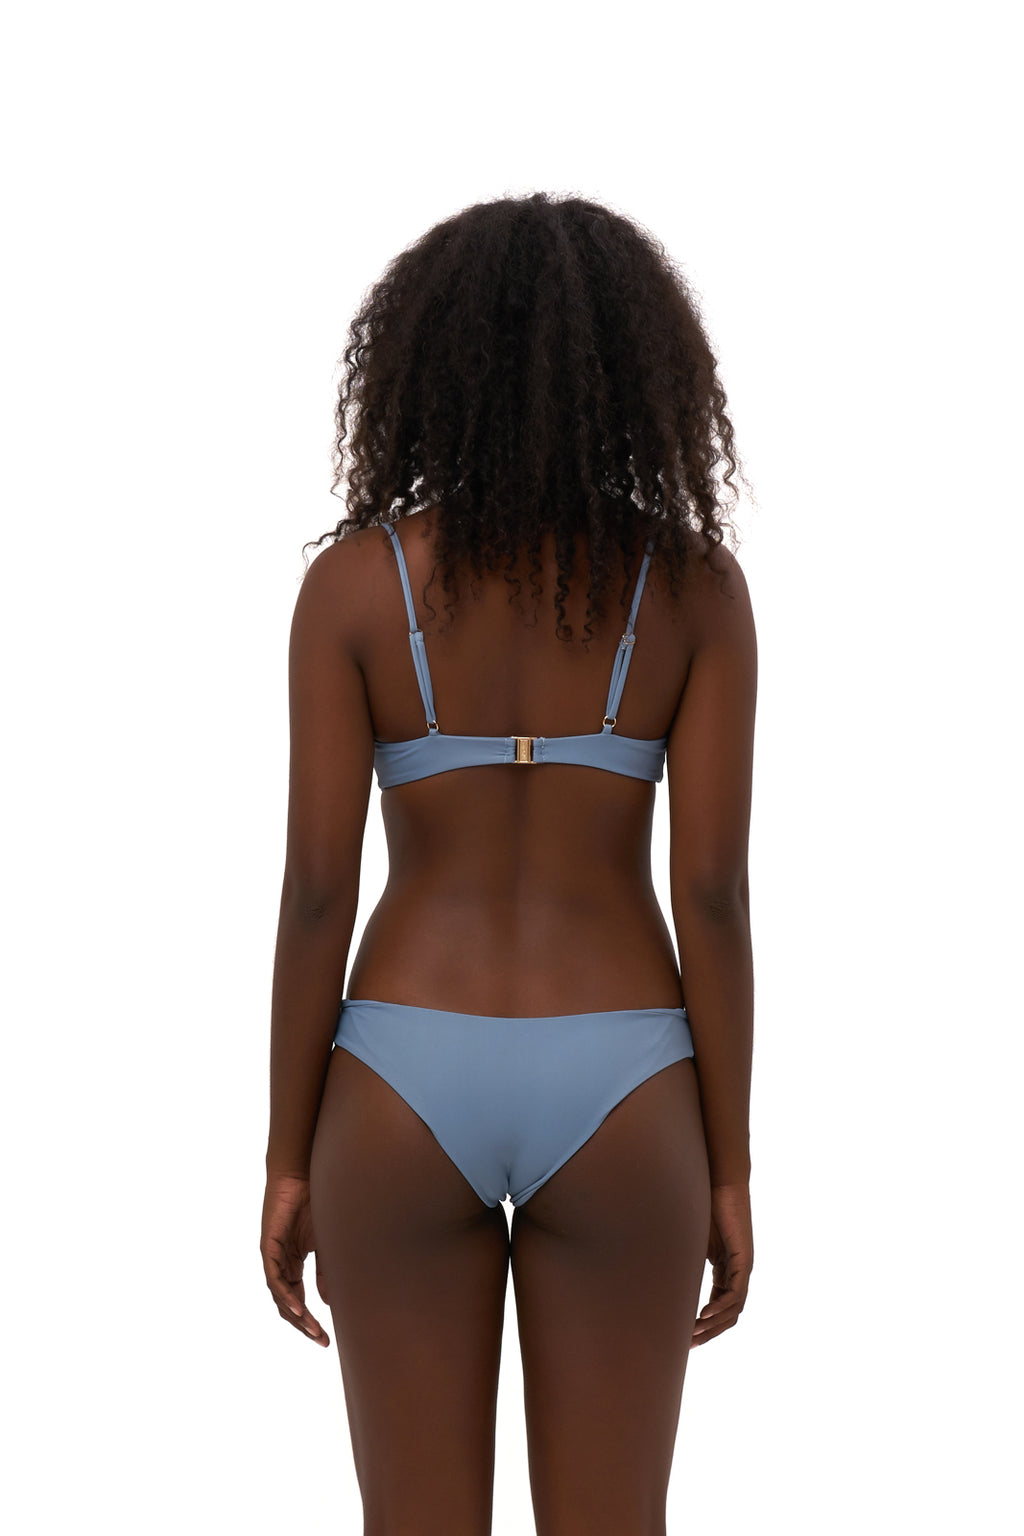 Storm Swimwear - St Barts - Bottom in Sky Blue